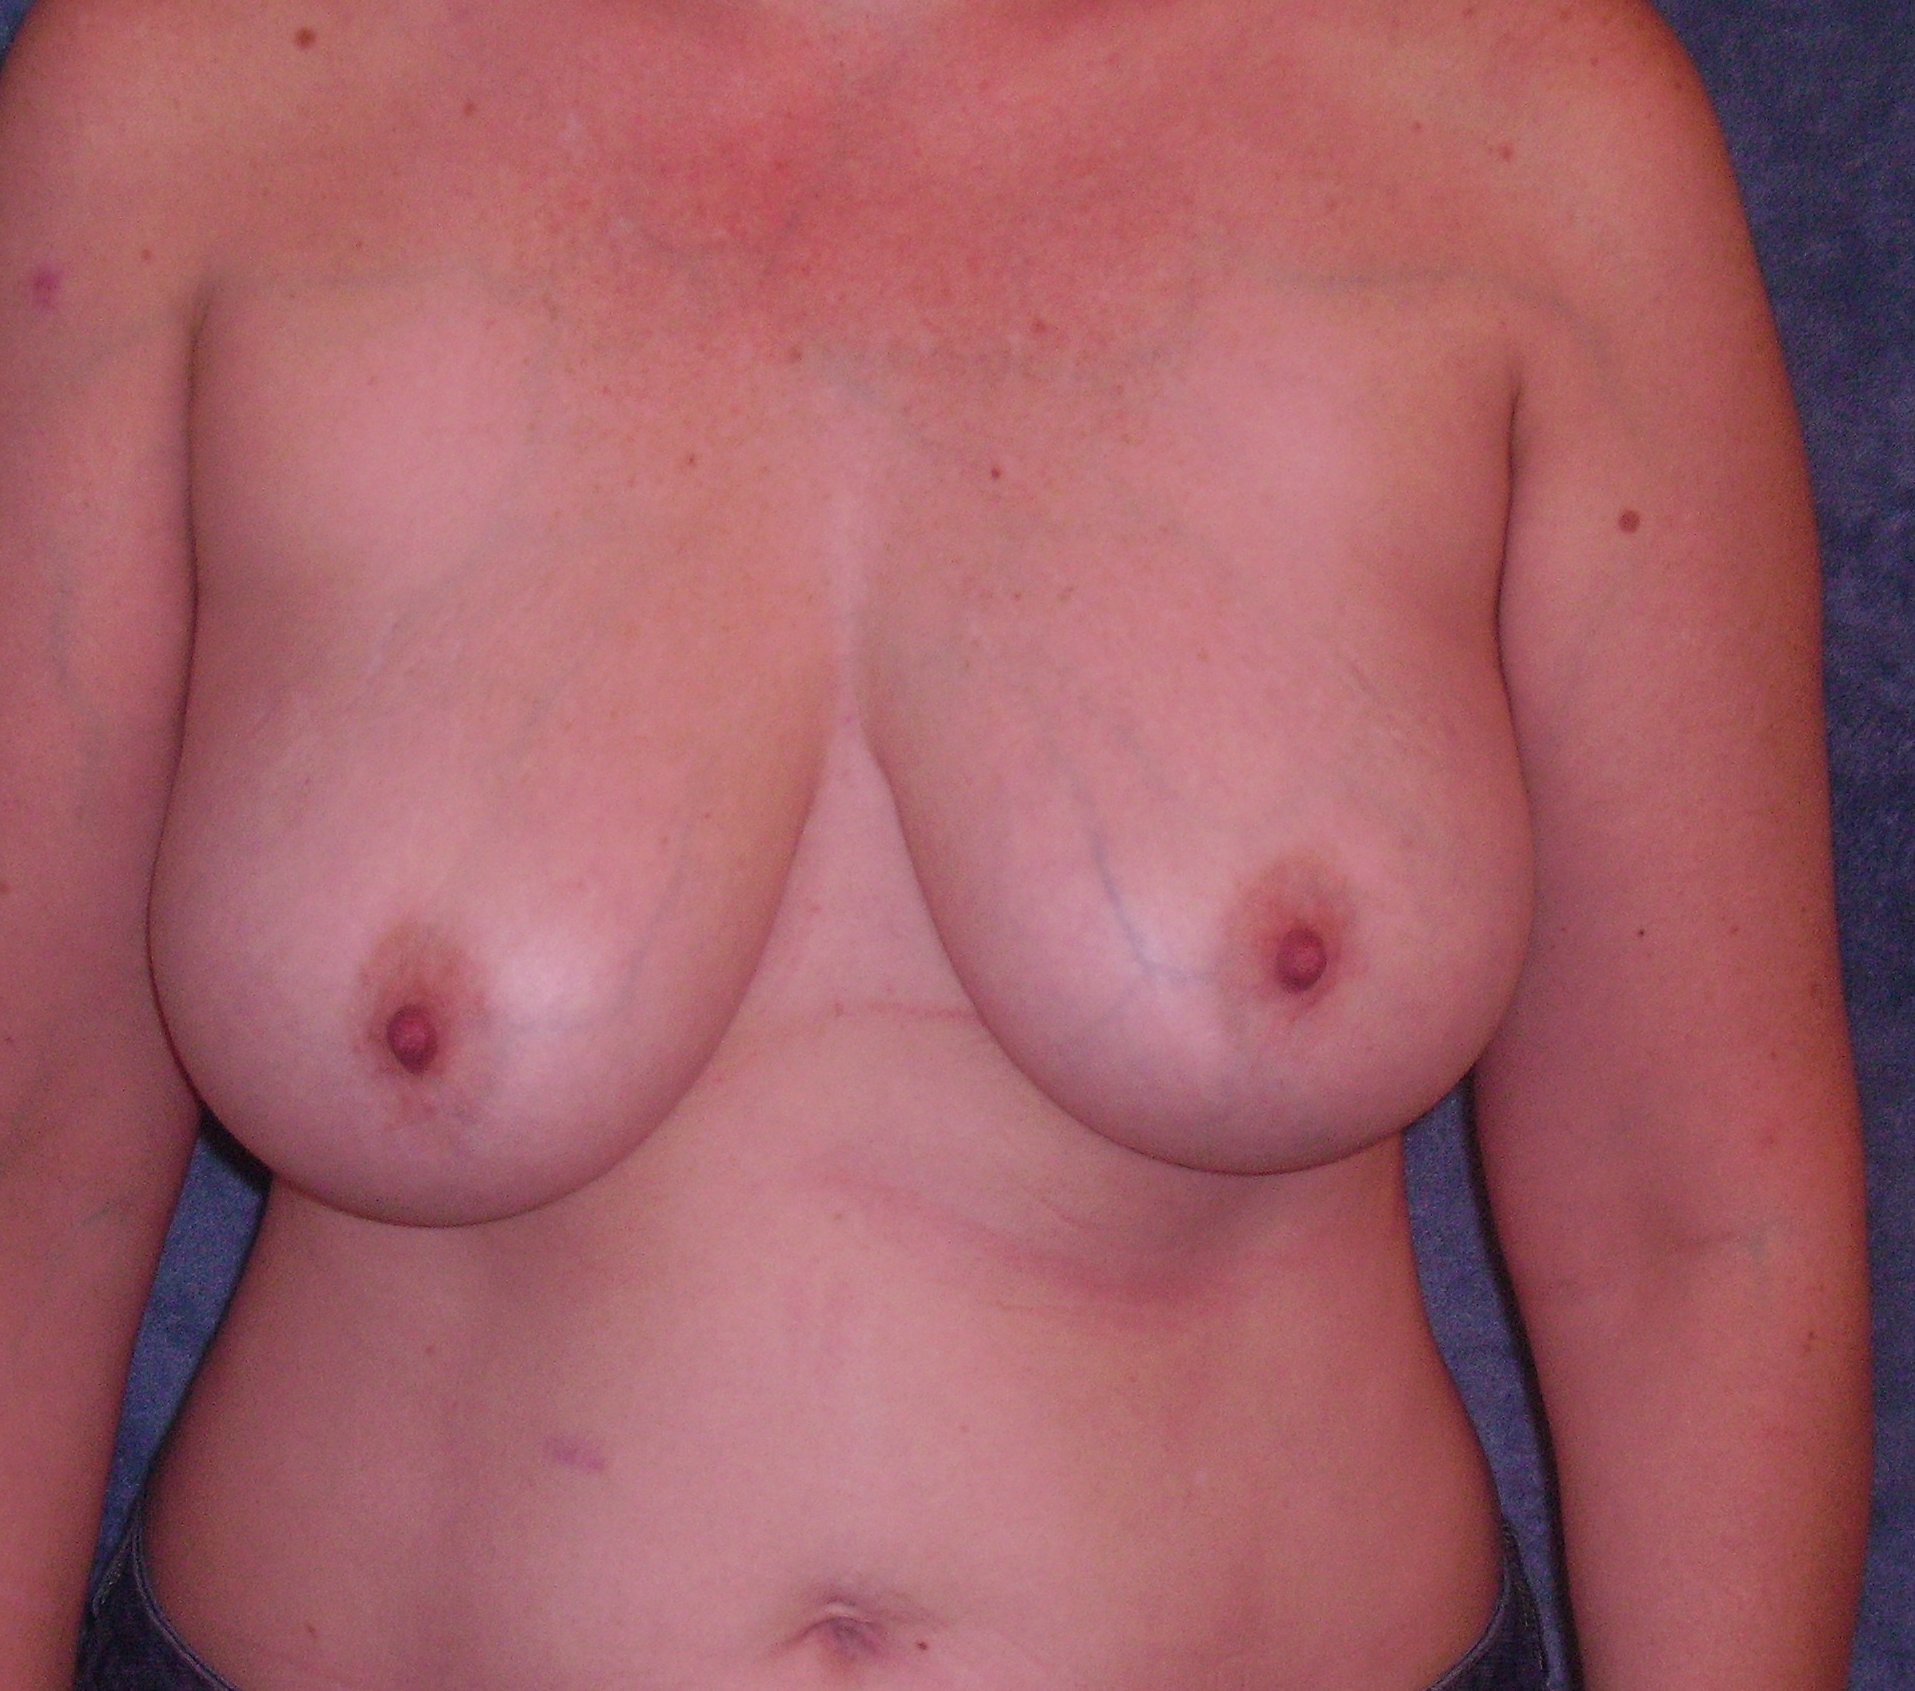 My Breast Lift - 47 Y/o, Breasts Grew from 34B to 40D